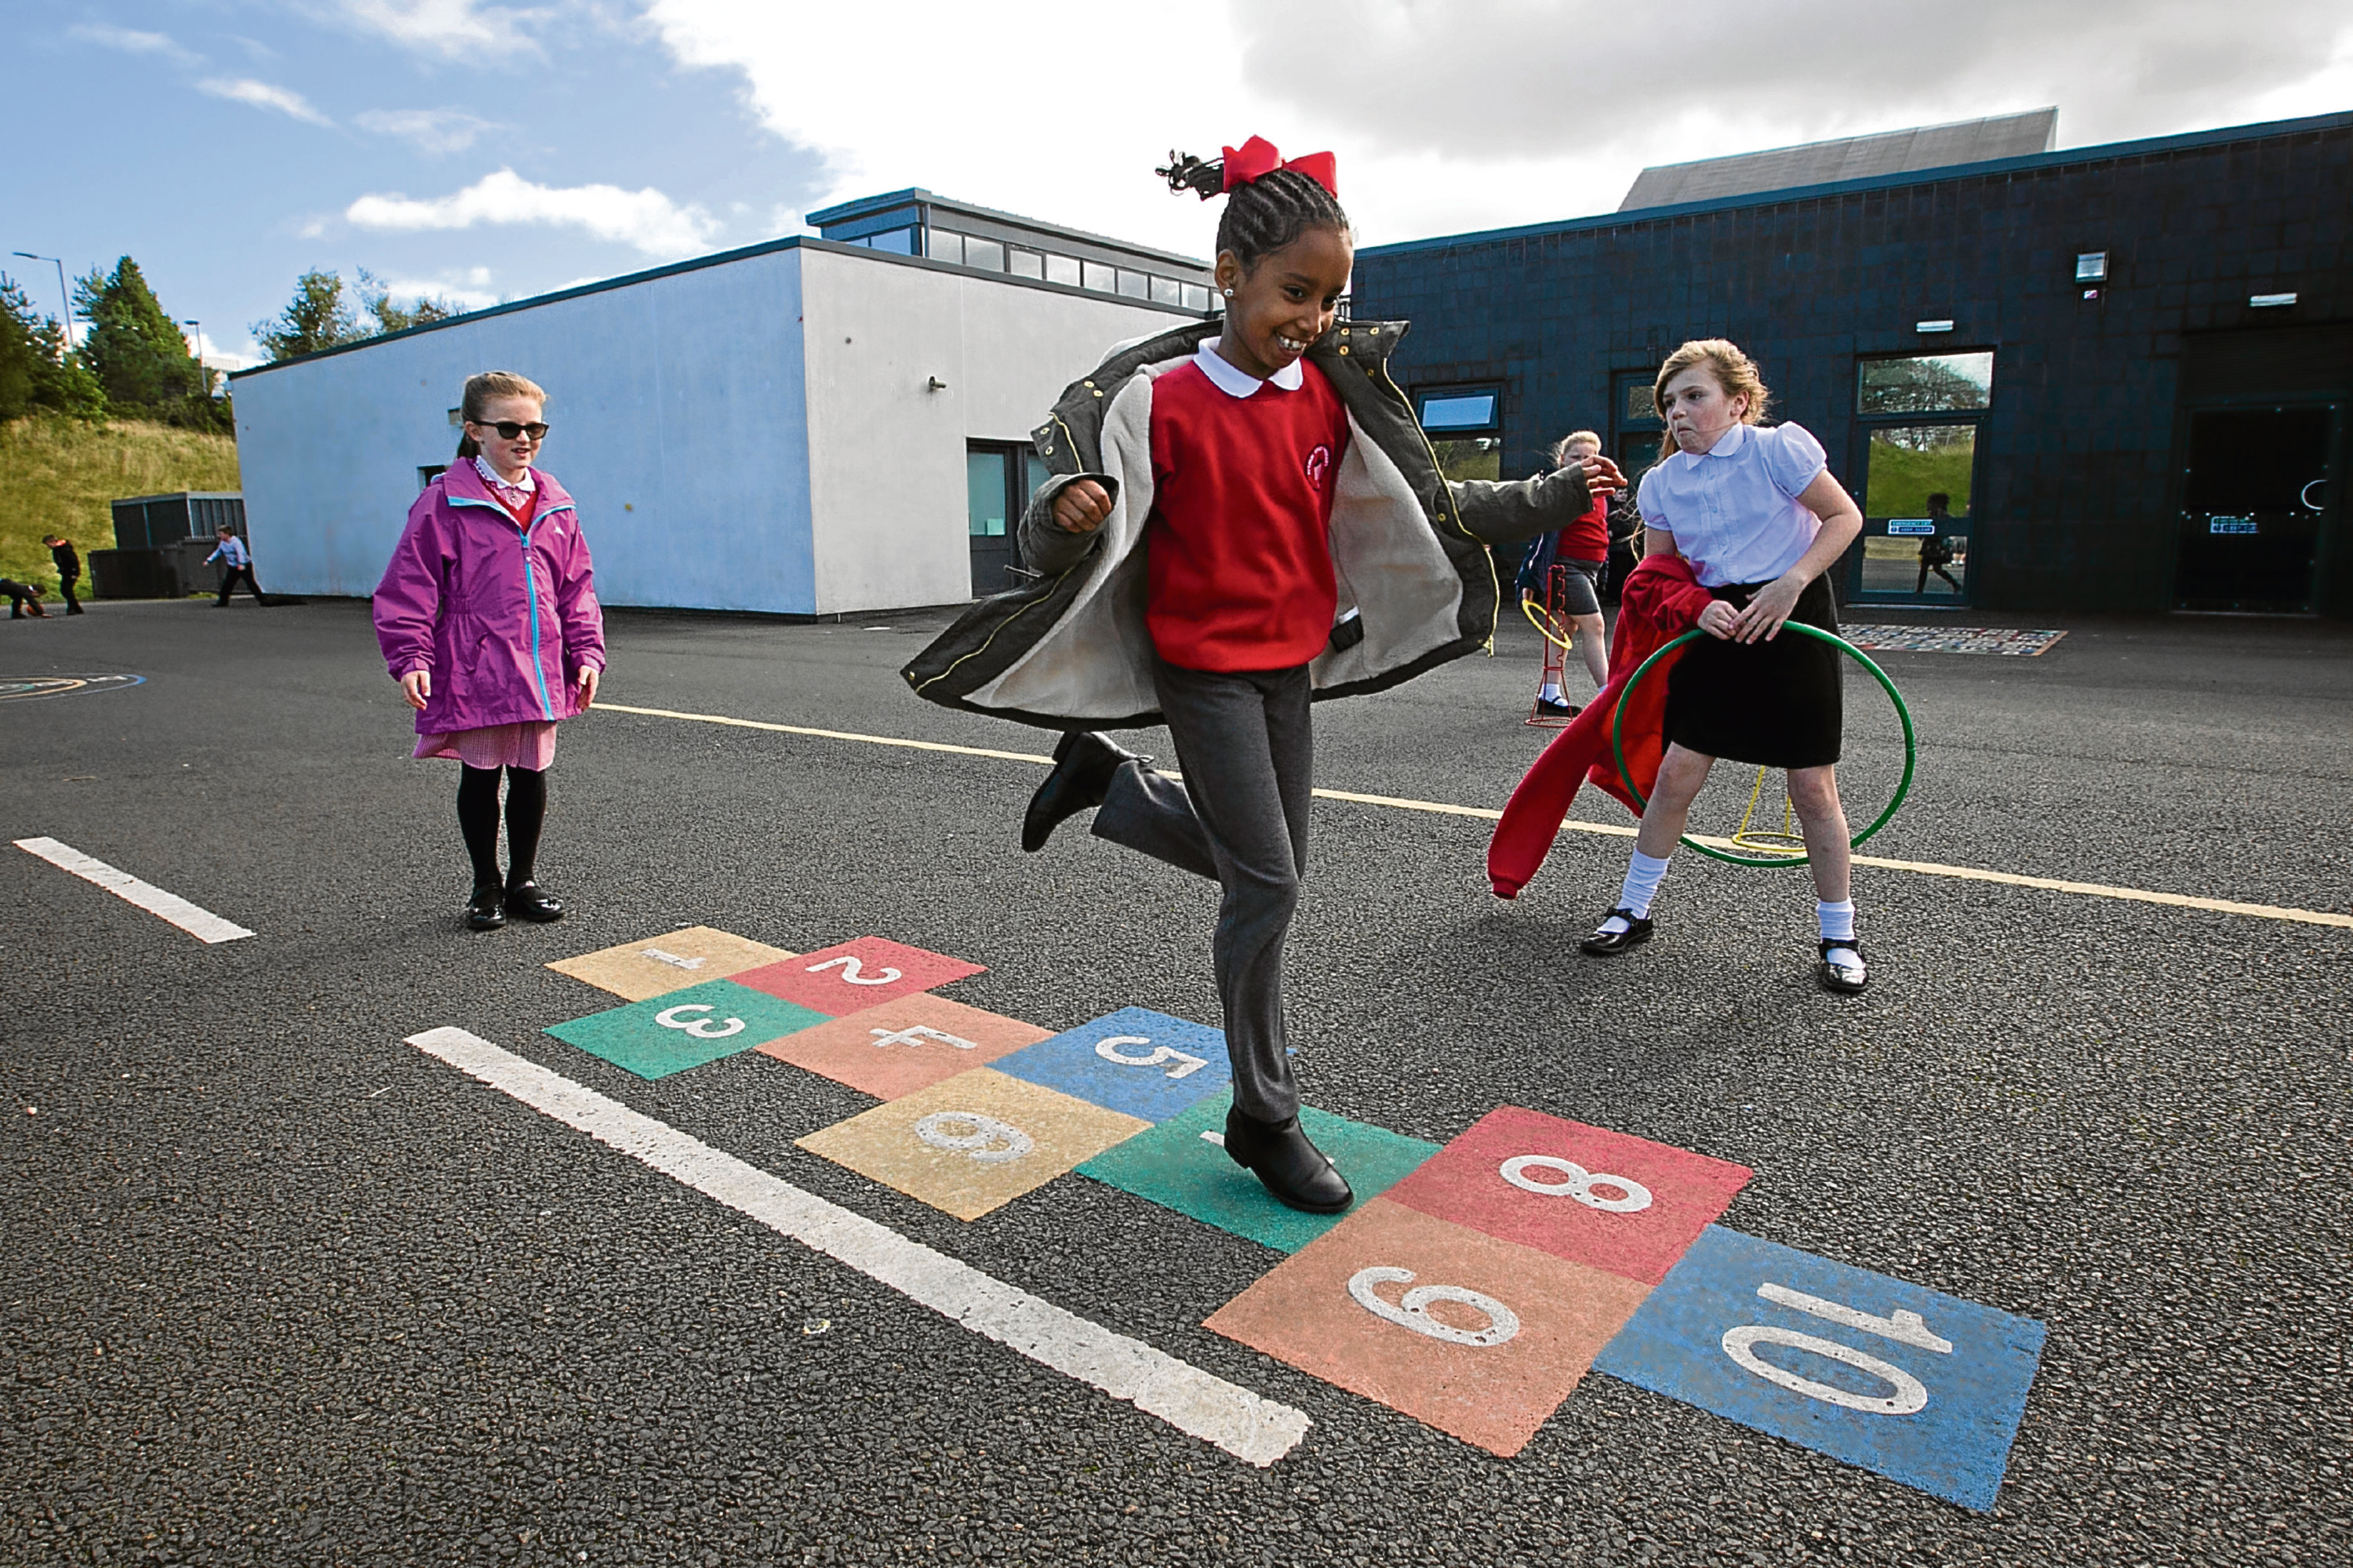 School children playing various outdoor games at Avenue End Primary School, near Easterhouse, in Glasgow (Andrew Cawley / DC Thomson)